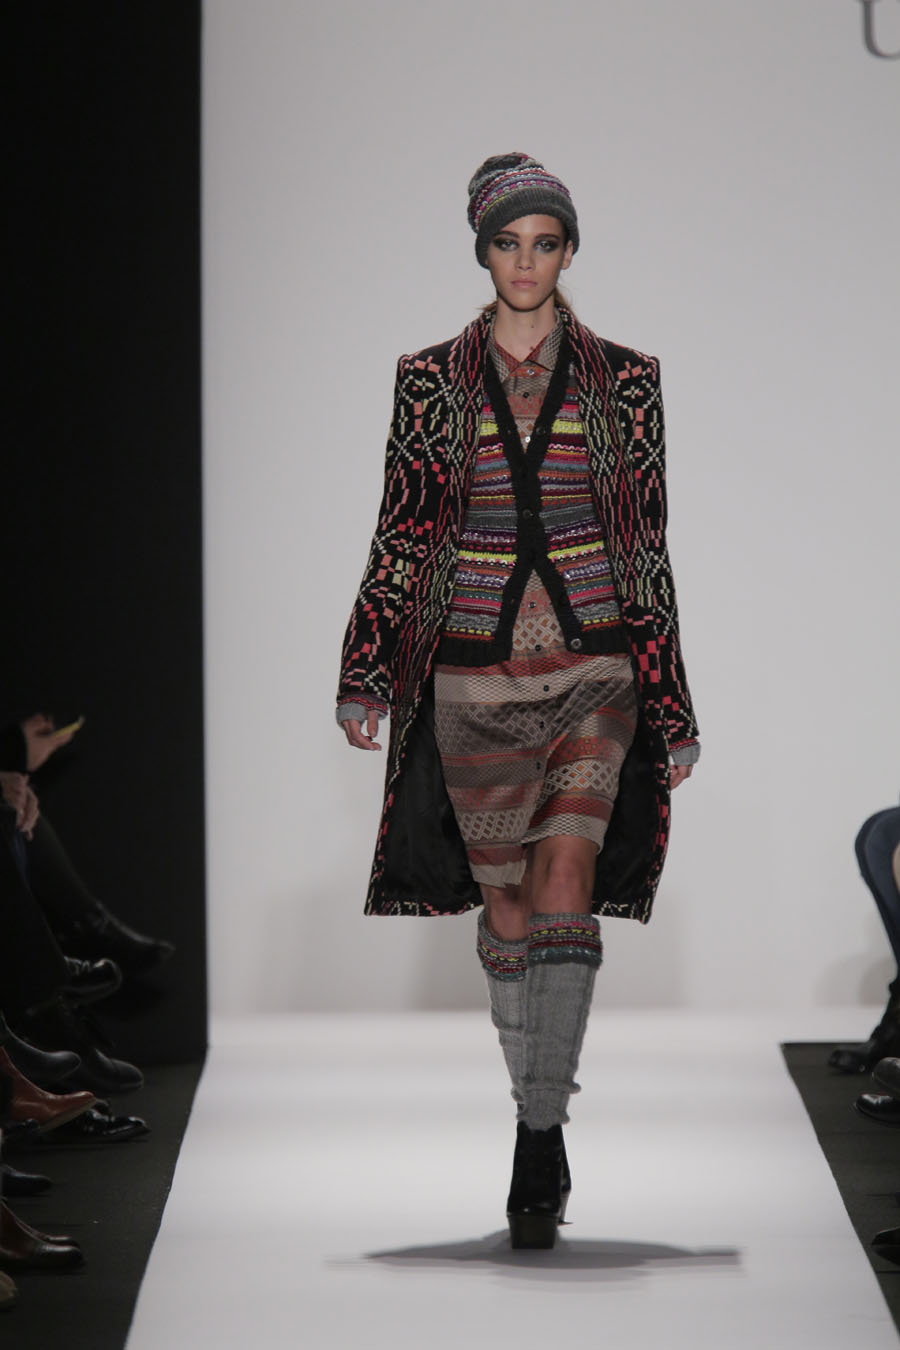 Academy of Art University Fall '13 Collections – Janine M. Villa and Amanda Nervig